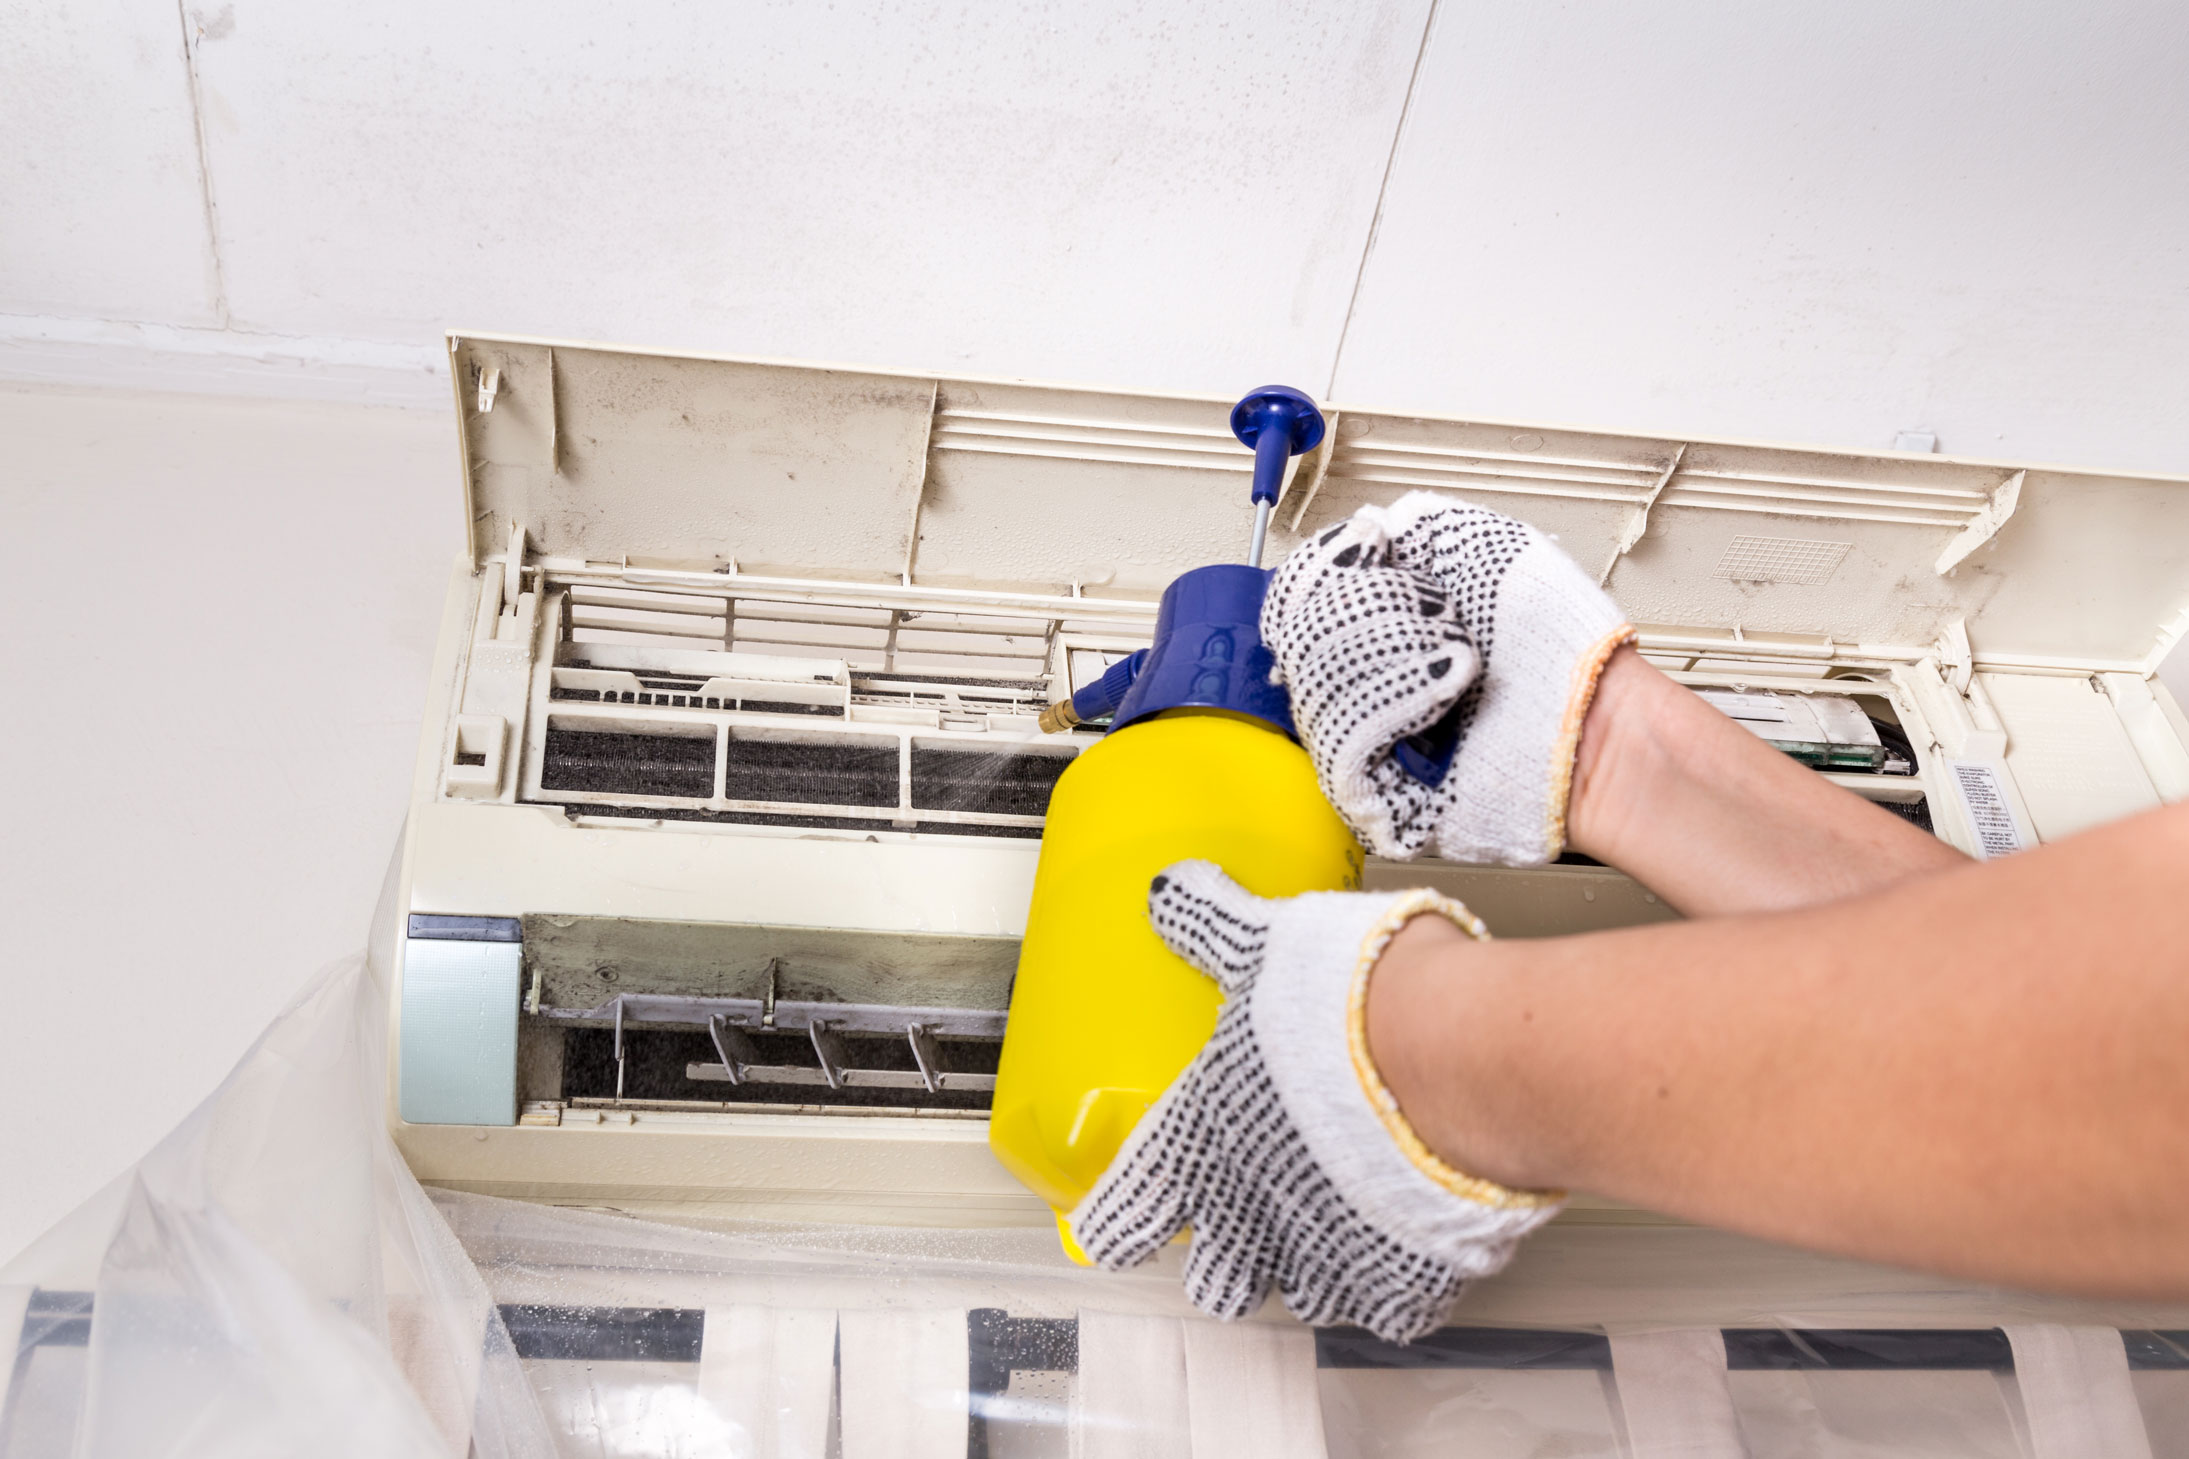 technician-spraying-chemical-water-onto-air-PPEB8PH